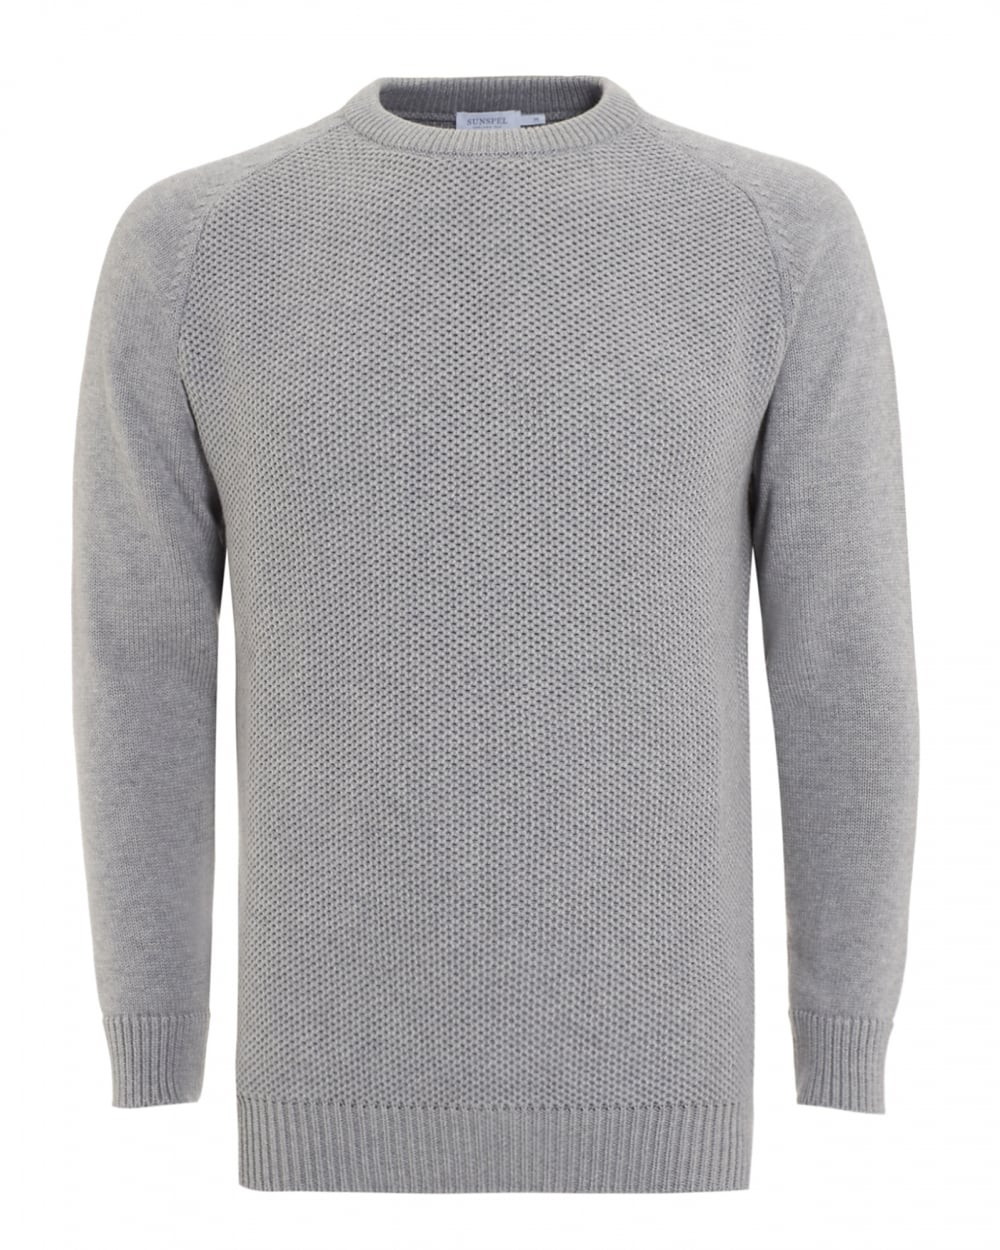 Mens Fashion Grey Knitted Jumpers